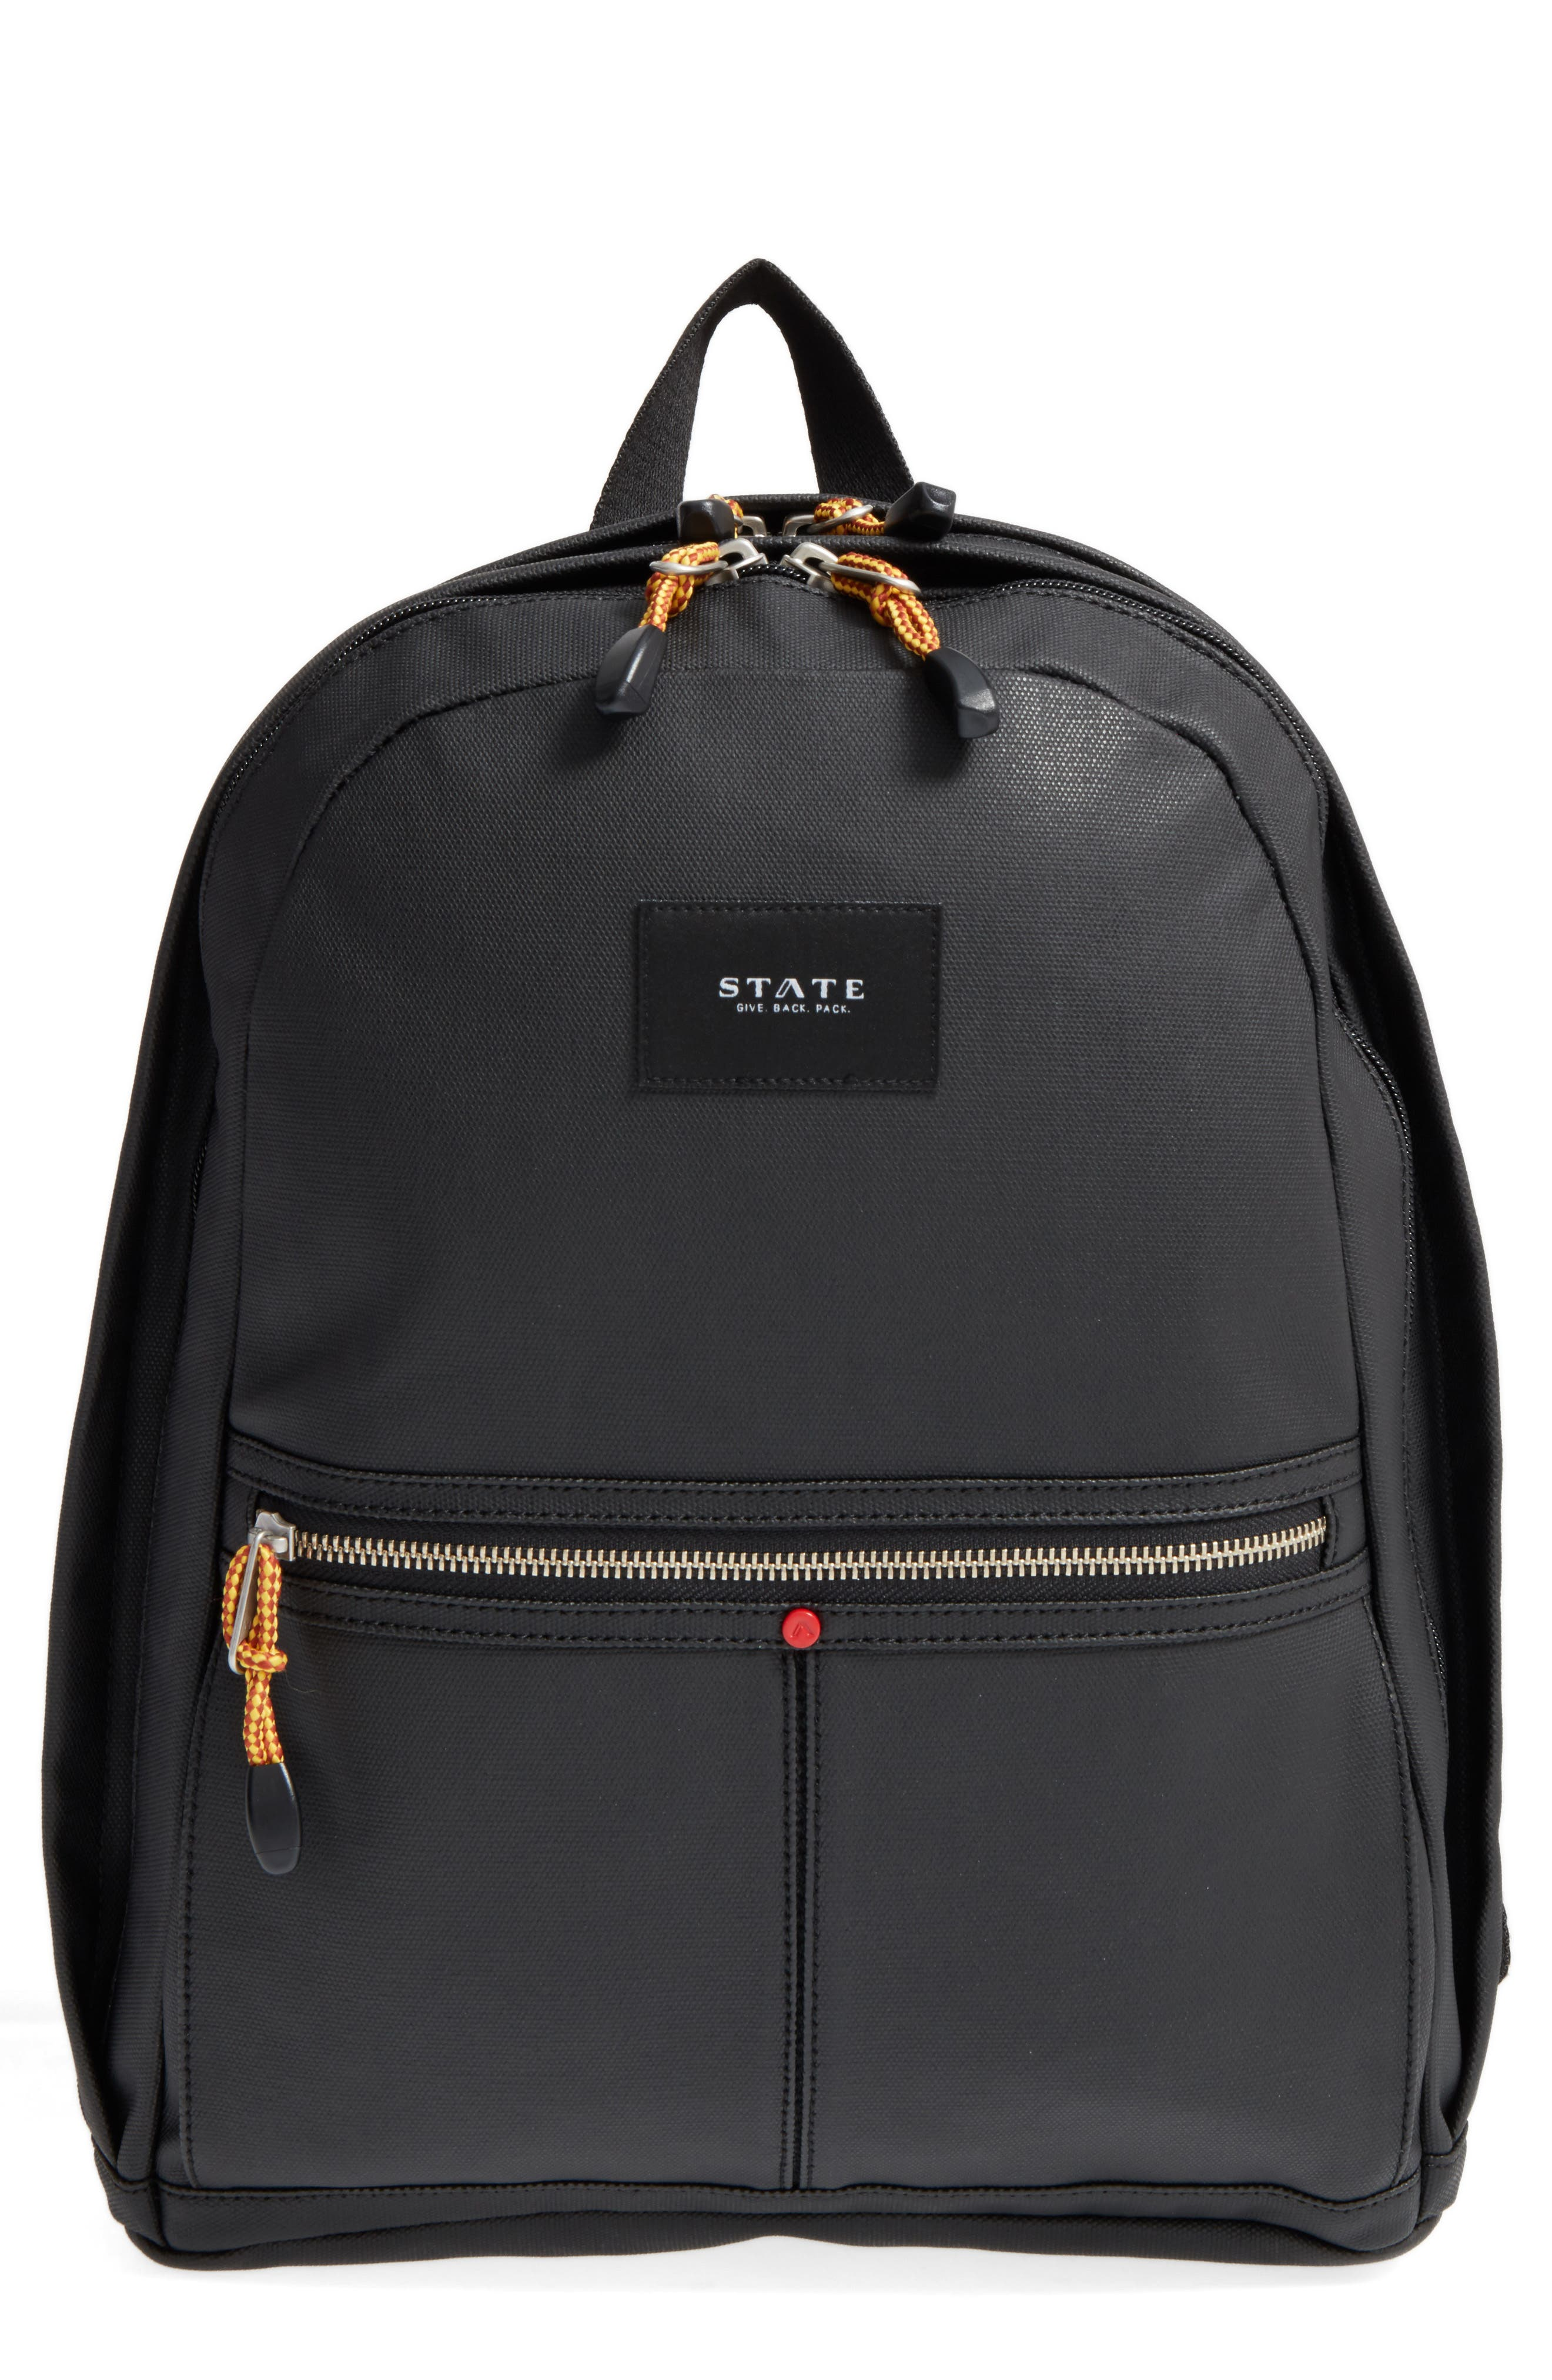 Main Image - STATE Bags Greenpoint Kent Backpack